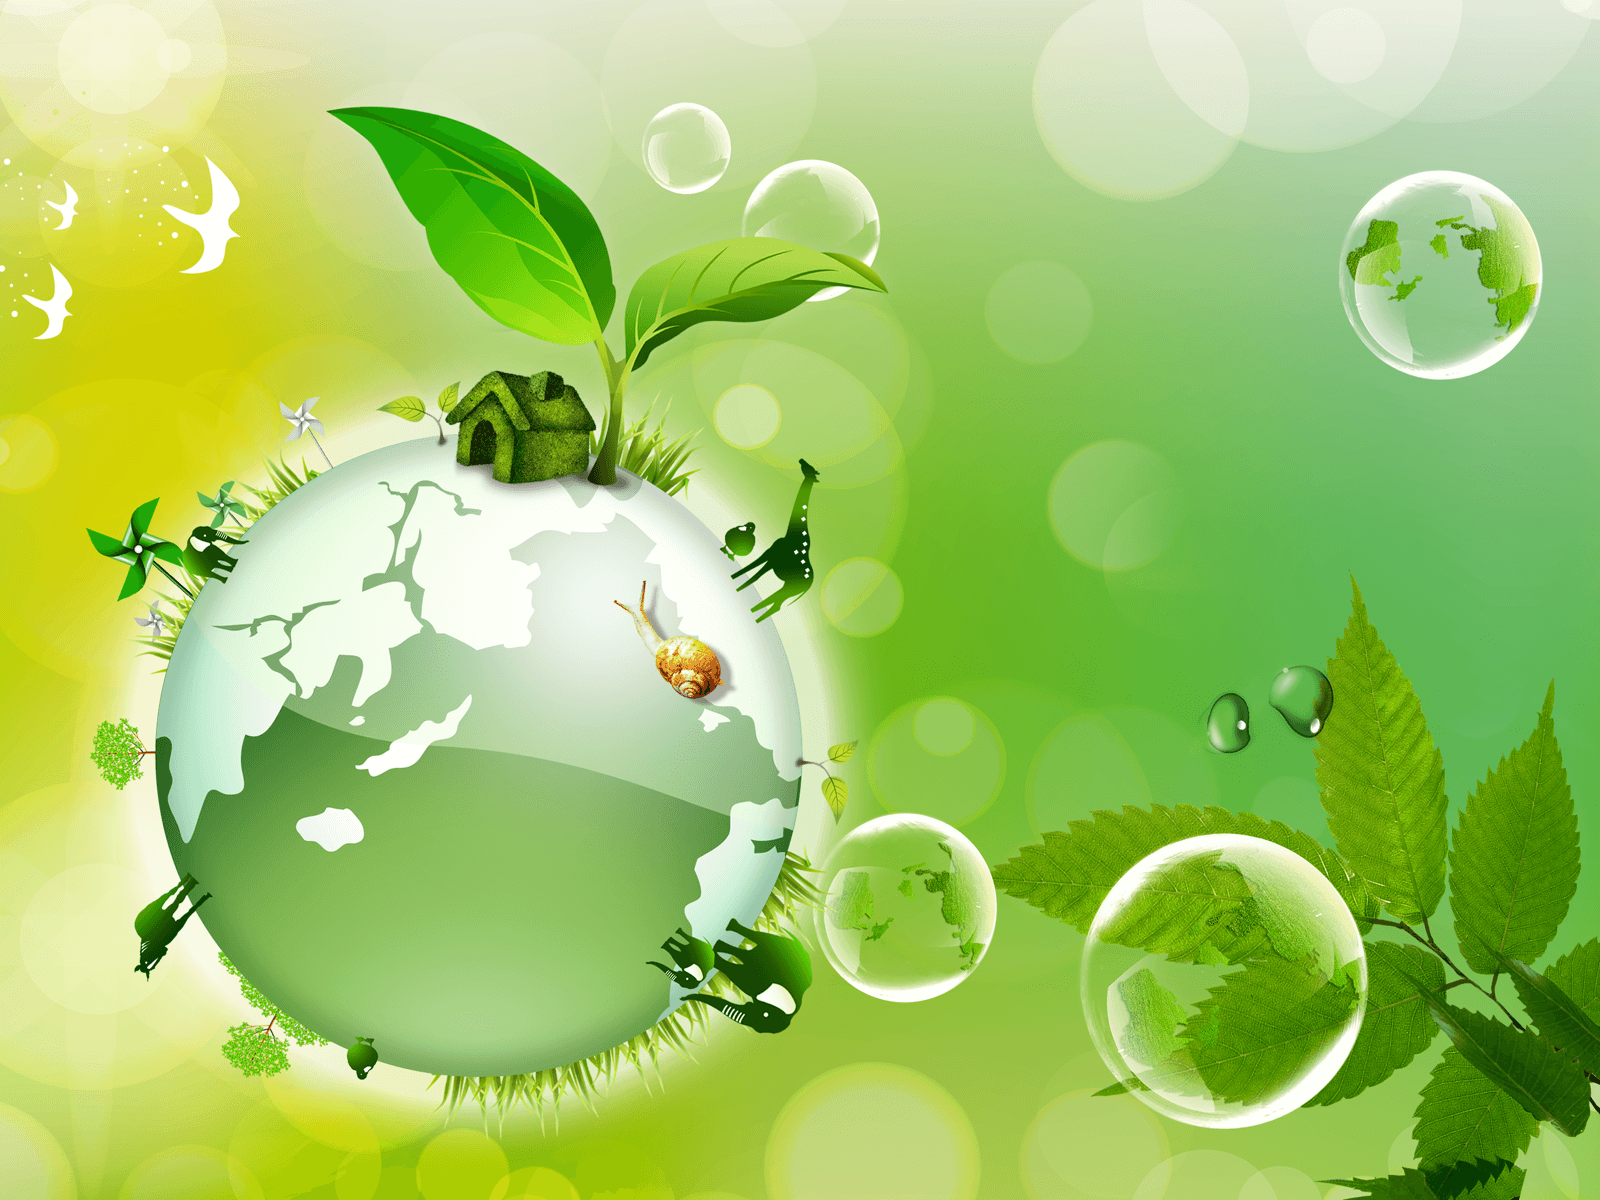 Hot,Spicy & Stuuning HD Wallpapers: Earth Day Wallpapers